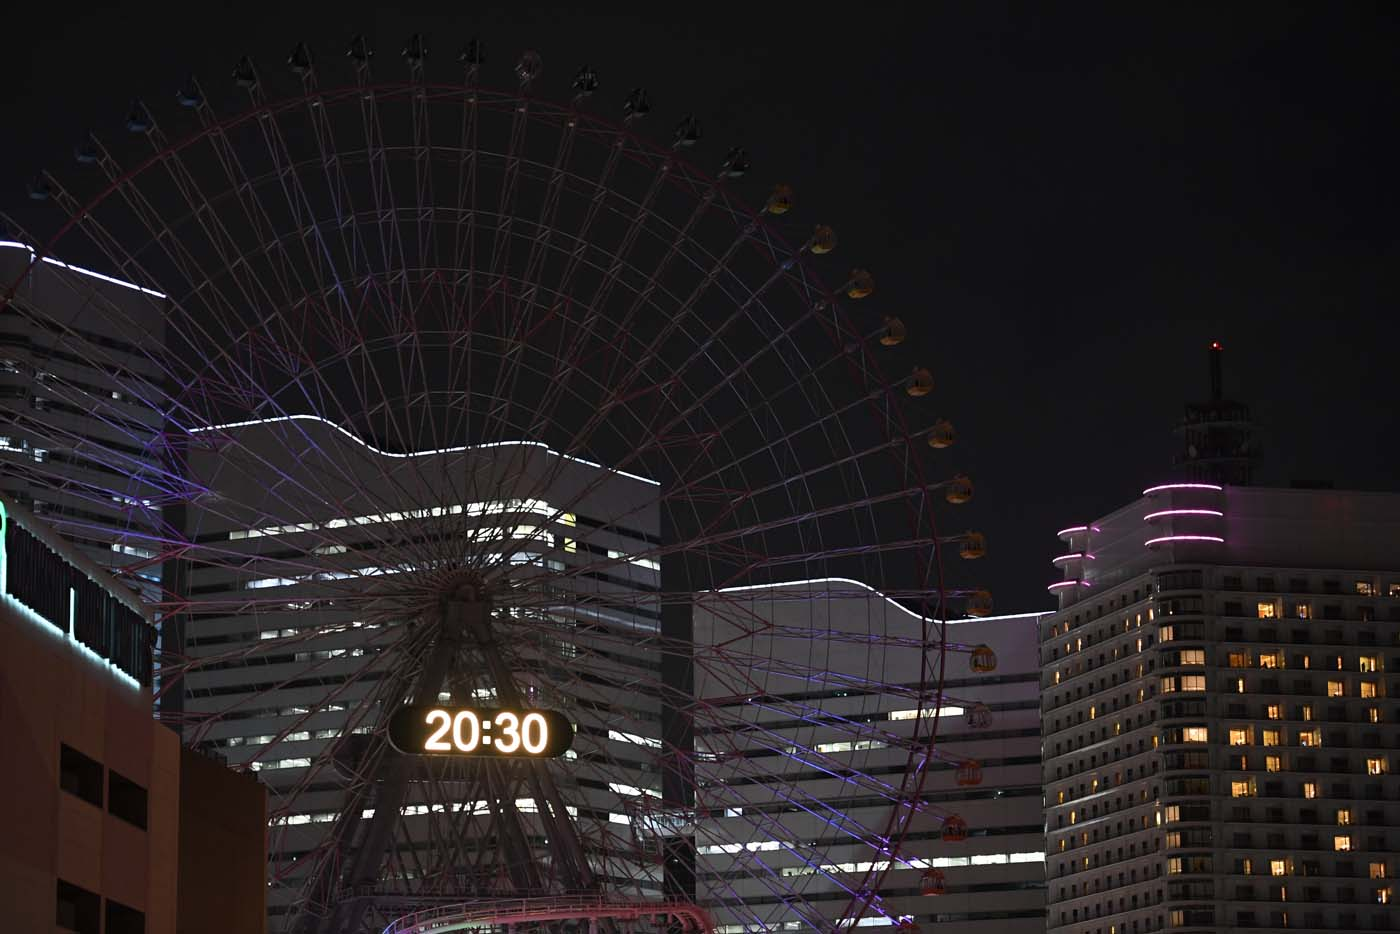 The Yokohama giant ferris wheel, Cosmo Clock 21, is seen with its lights turned off for the Earth Hour environmental campaign in Yokohama on March 25, 2017. / AFP PHOTO / Toshifumi KITAMURA